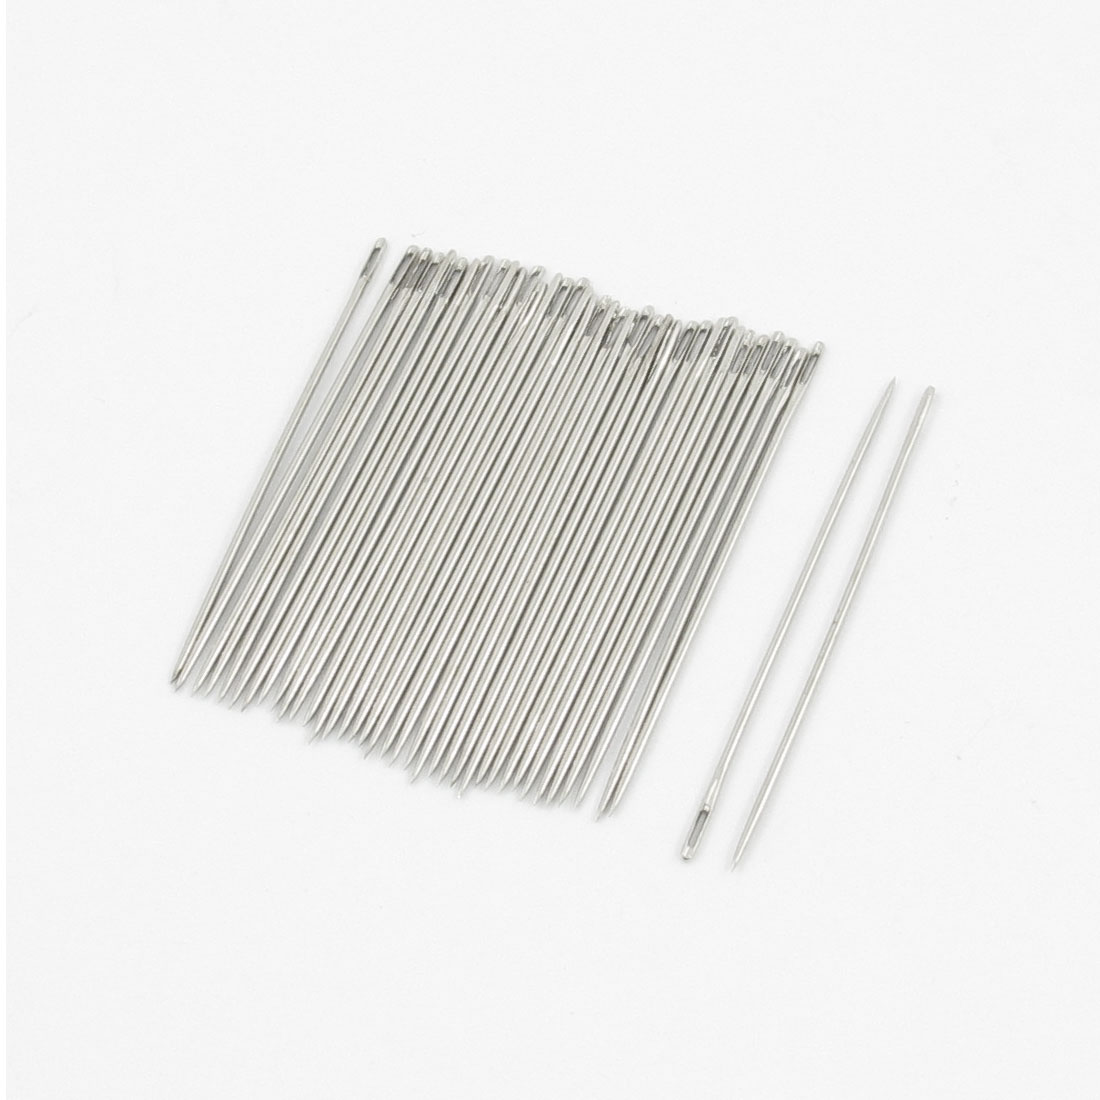 0.4mm Dia Sharp Tip Metal Quilting Stitching Sewing Needles 30 Pcs